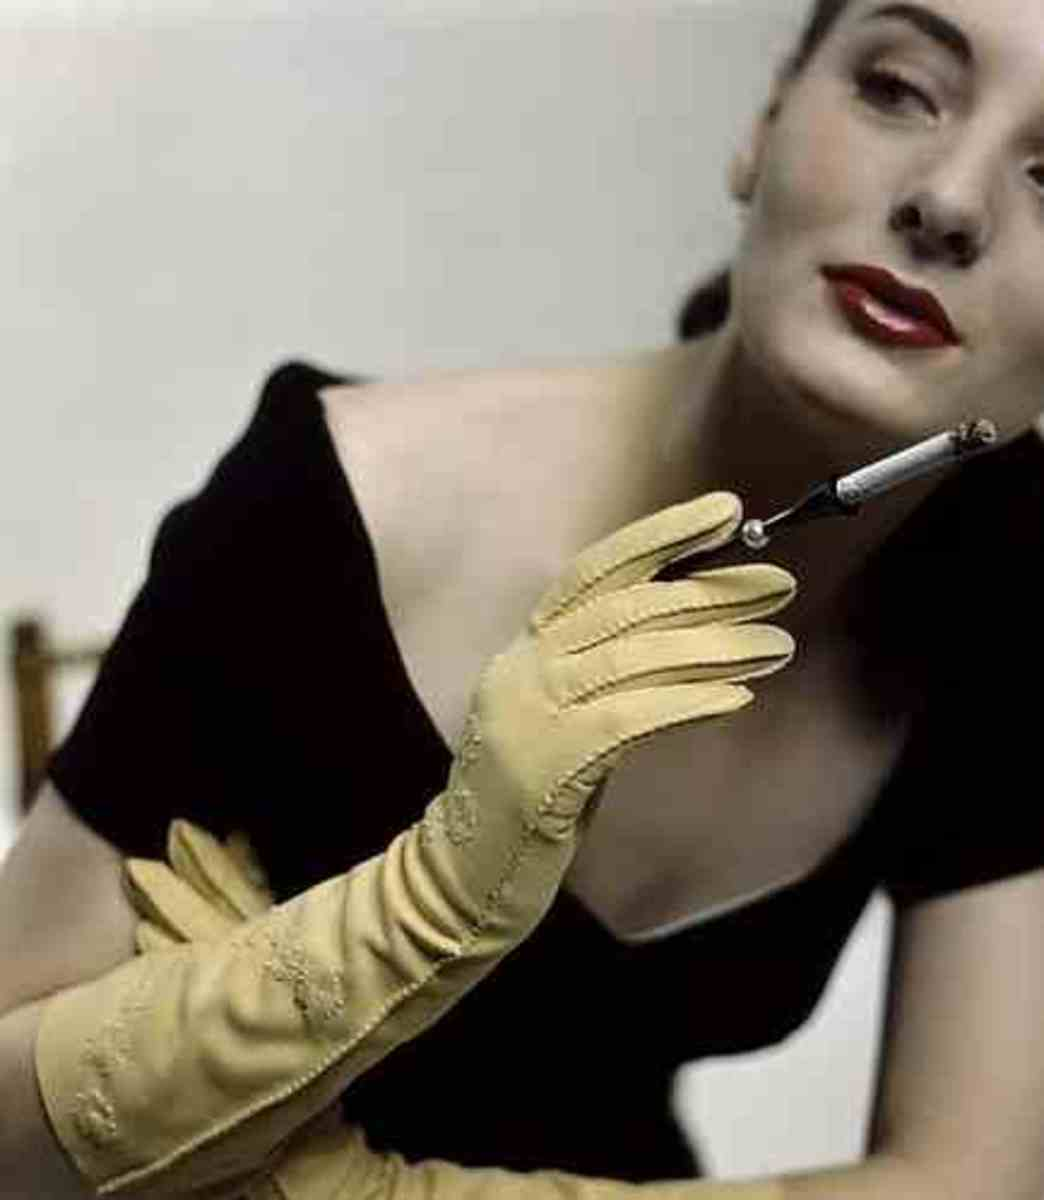 Femme Fatale gloves and cigarette holder favim.com